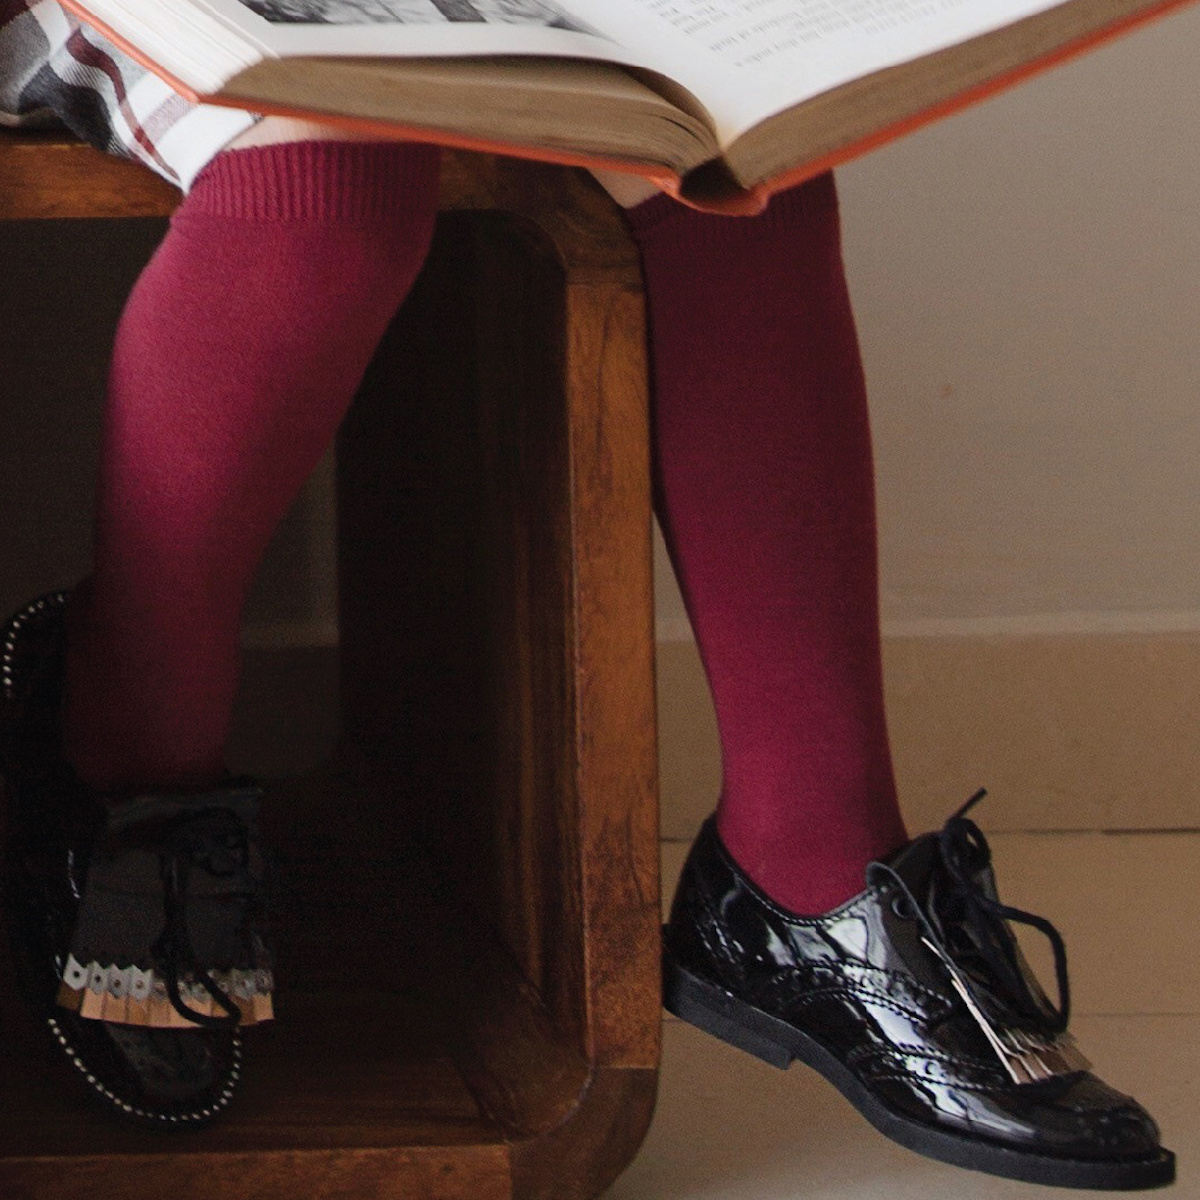 A child reading a book wearing Condor socks